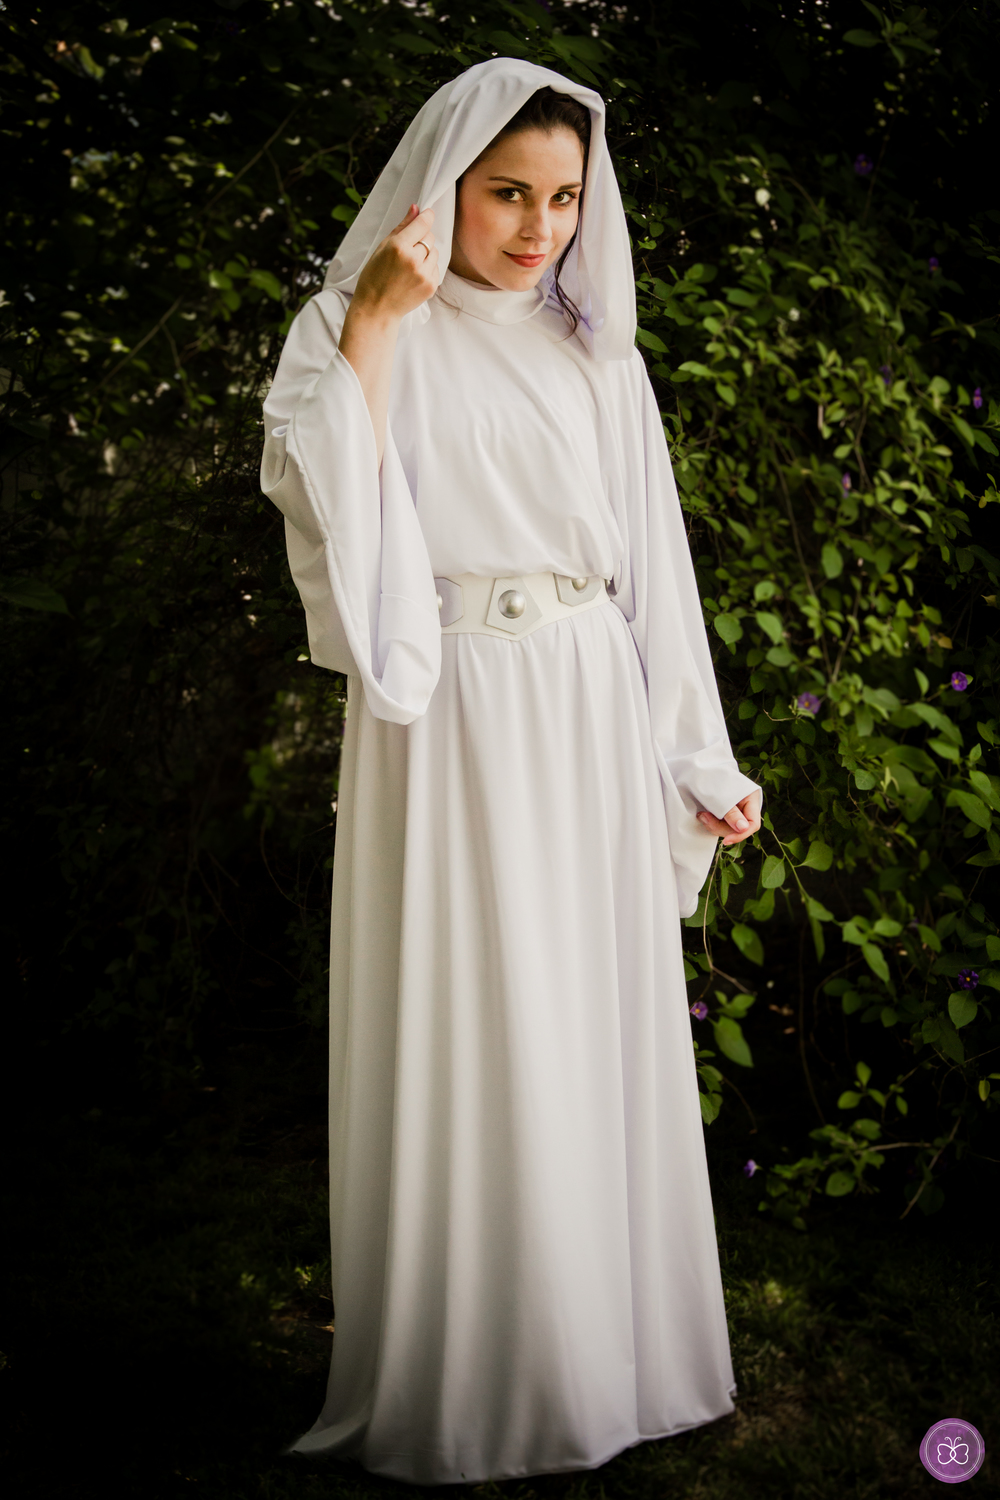 Our star warrior princess Leia wears an authentically replicated, handcrafted gown.